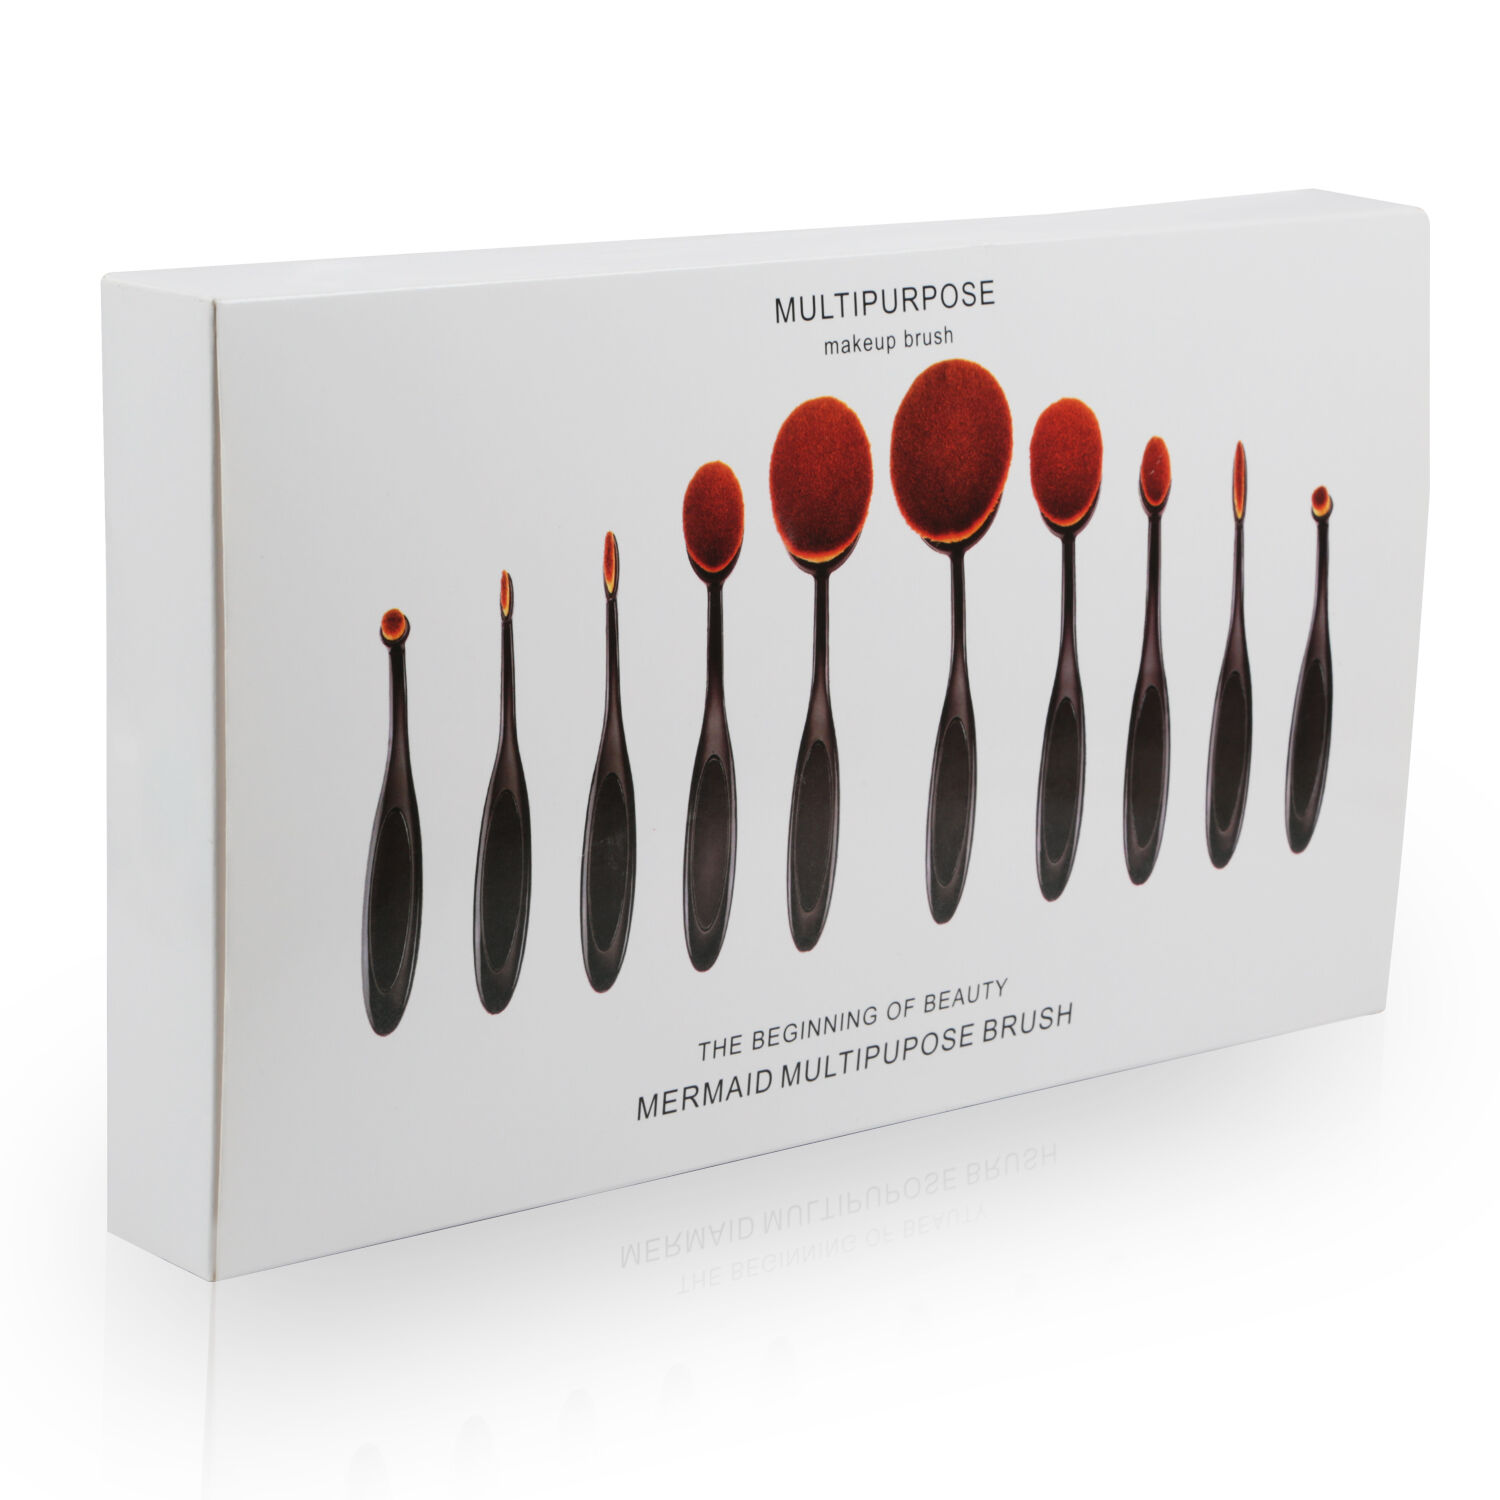 Купить Unbranded Oval Shaped Makeup Brush - 10Pcs Professional Makeup Brushes Set Oval Cream Puff Toothbrush Brush Black